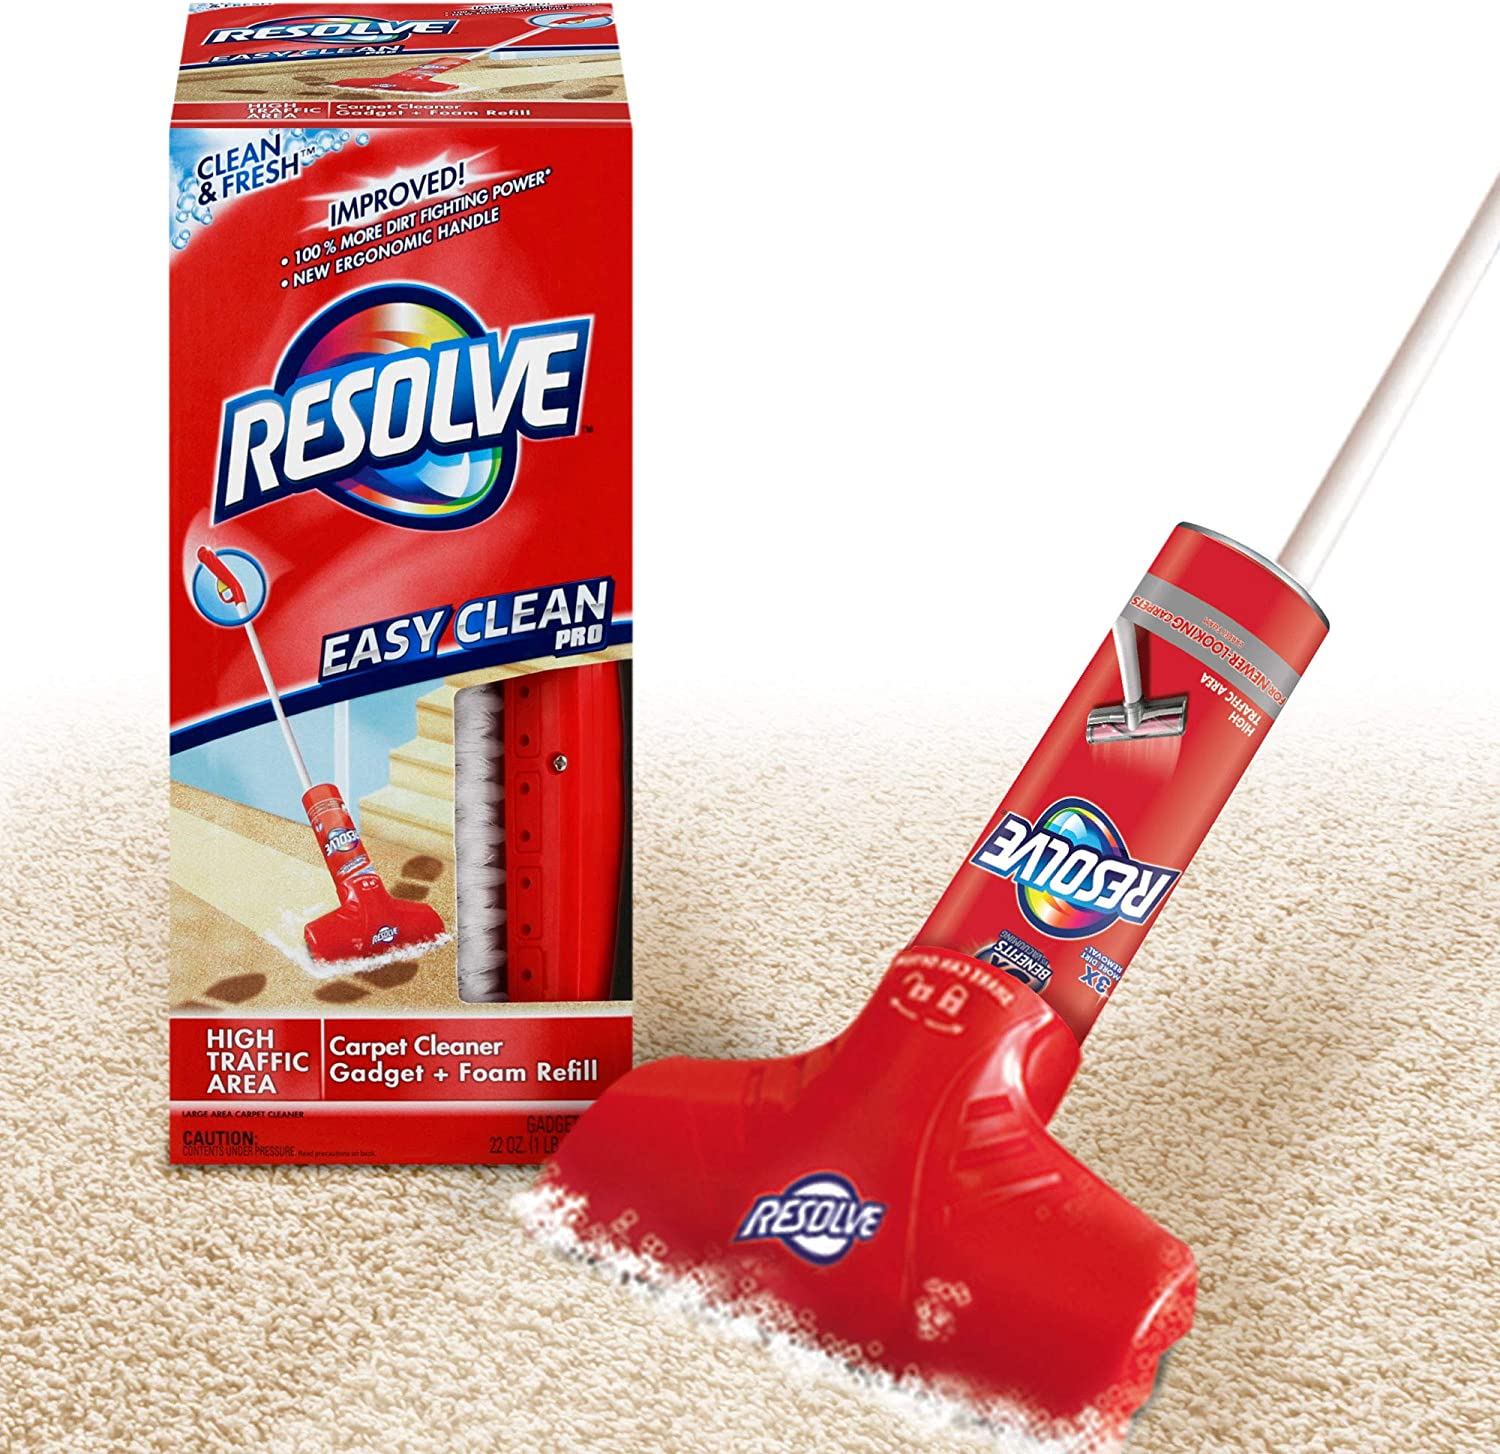 Amazon Com Resolve Easy Clean Pro Carpet Cleaner Gadget Foam Spray Refill Clean Fresh 22 Oz Can Carpet Shampooer System Health Personal Care